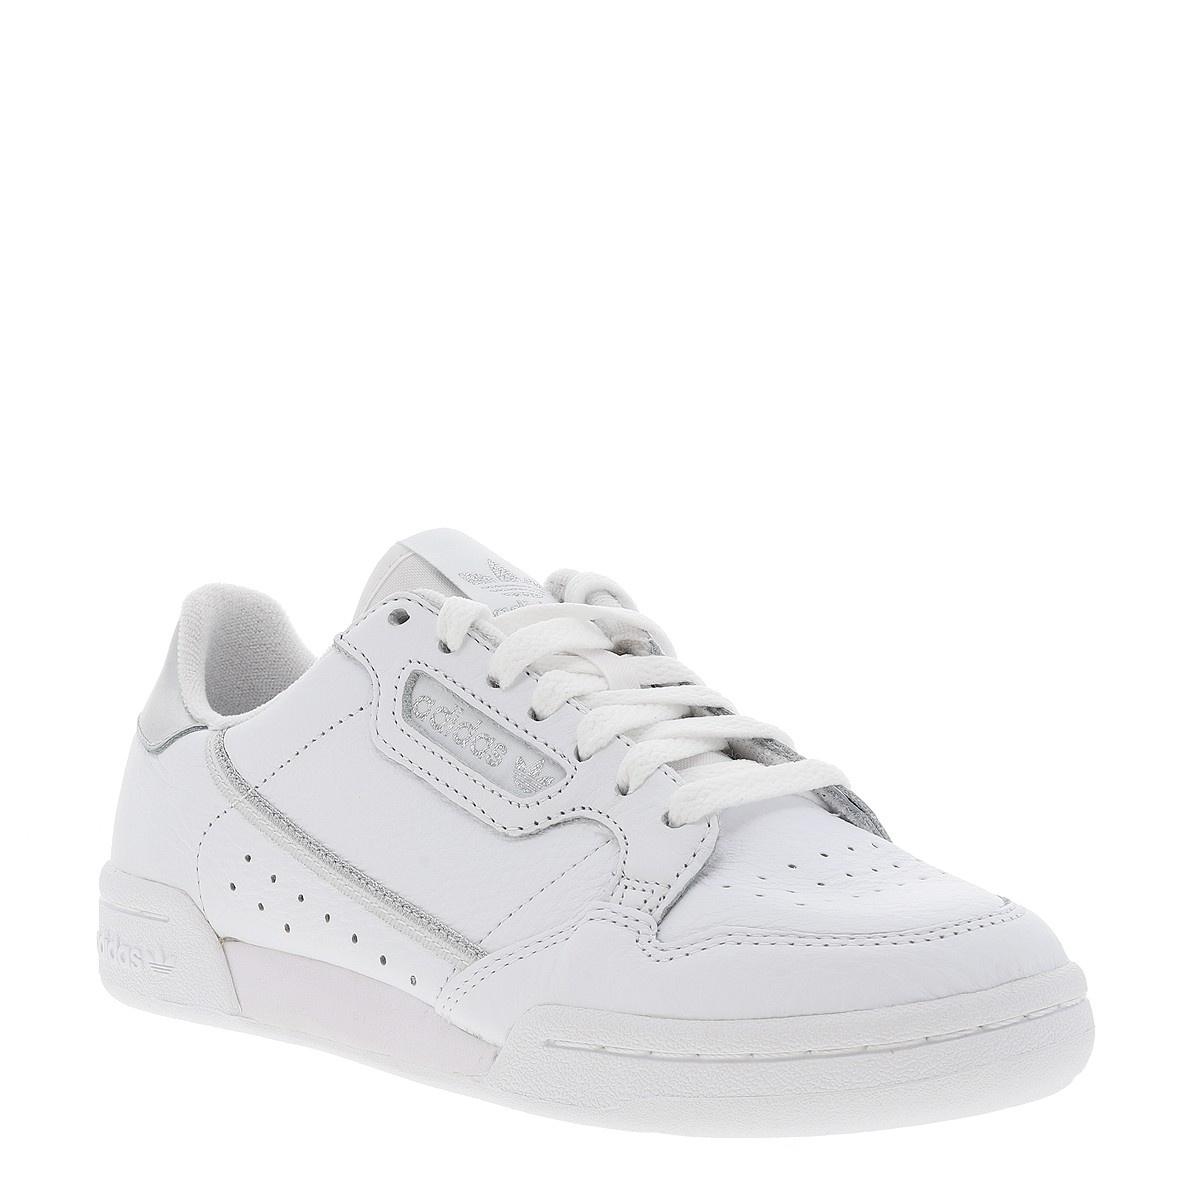 ADIDAS ORIGINALS Baskets Continental 80 femme blanc